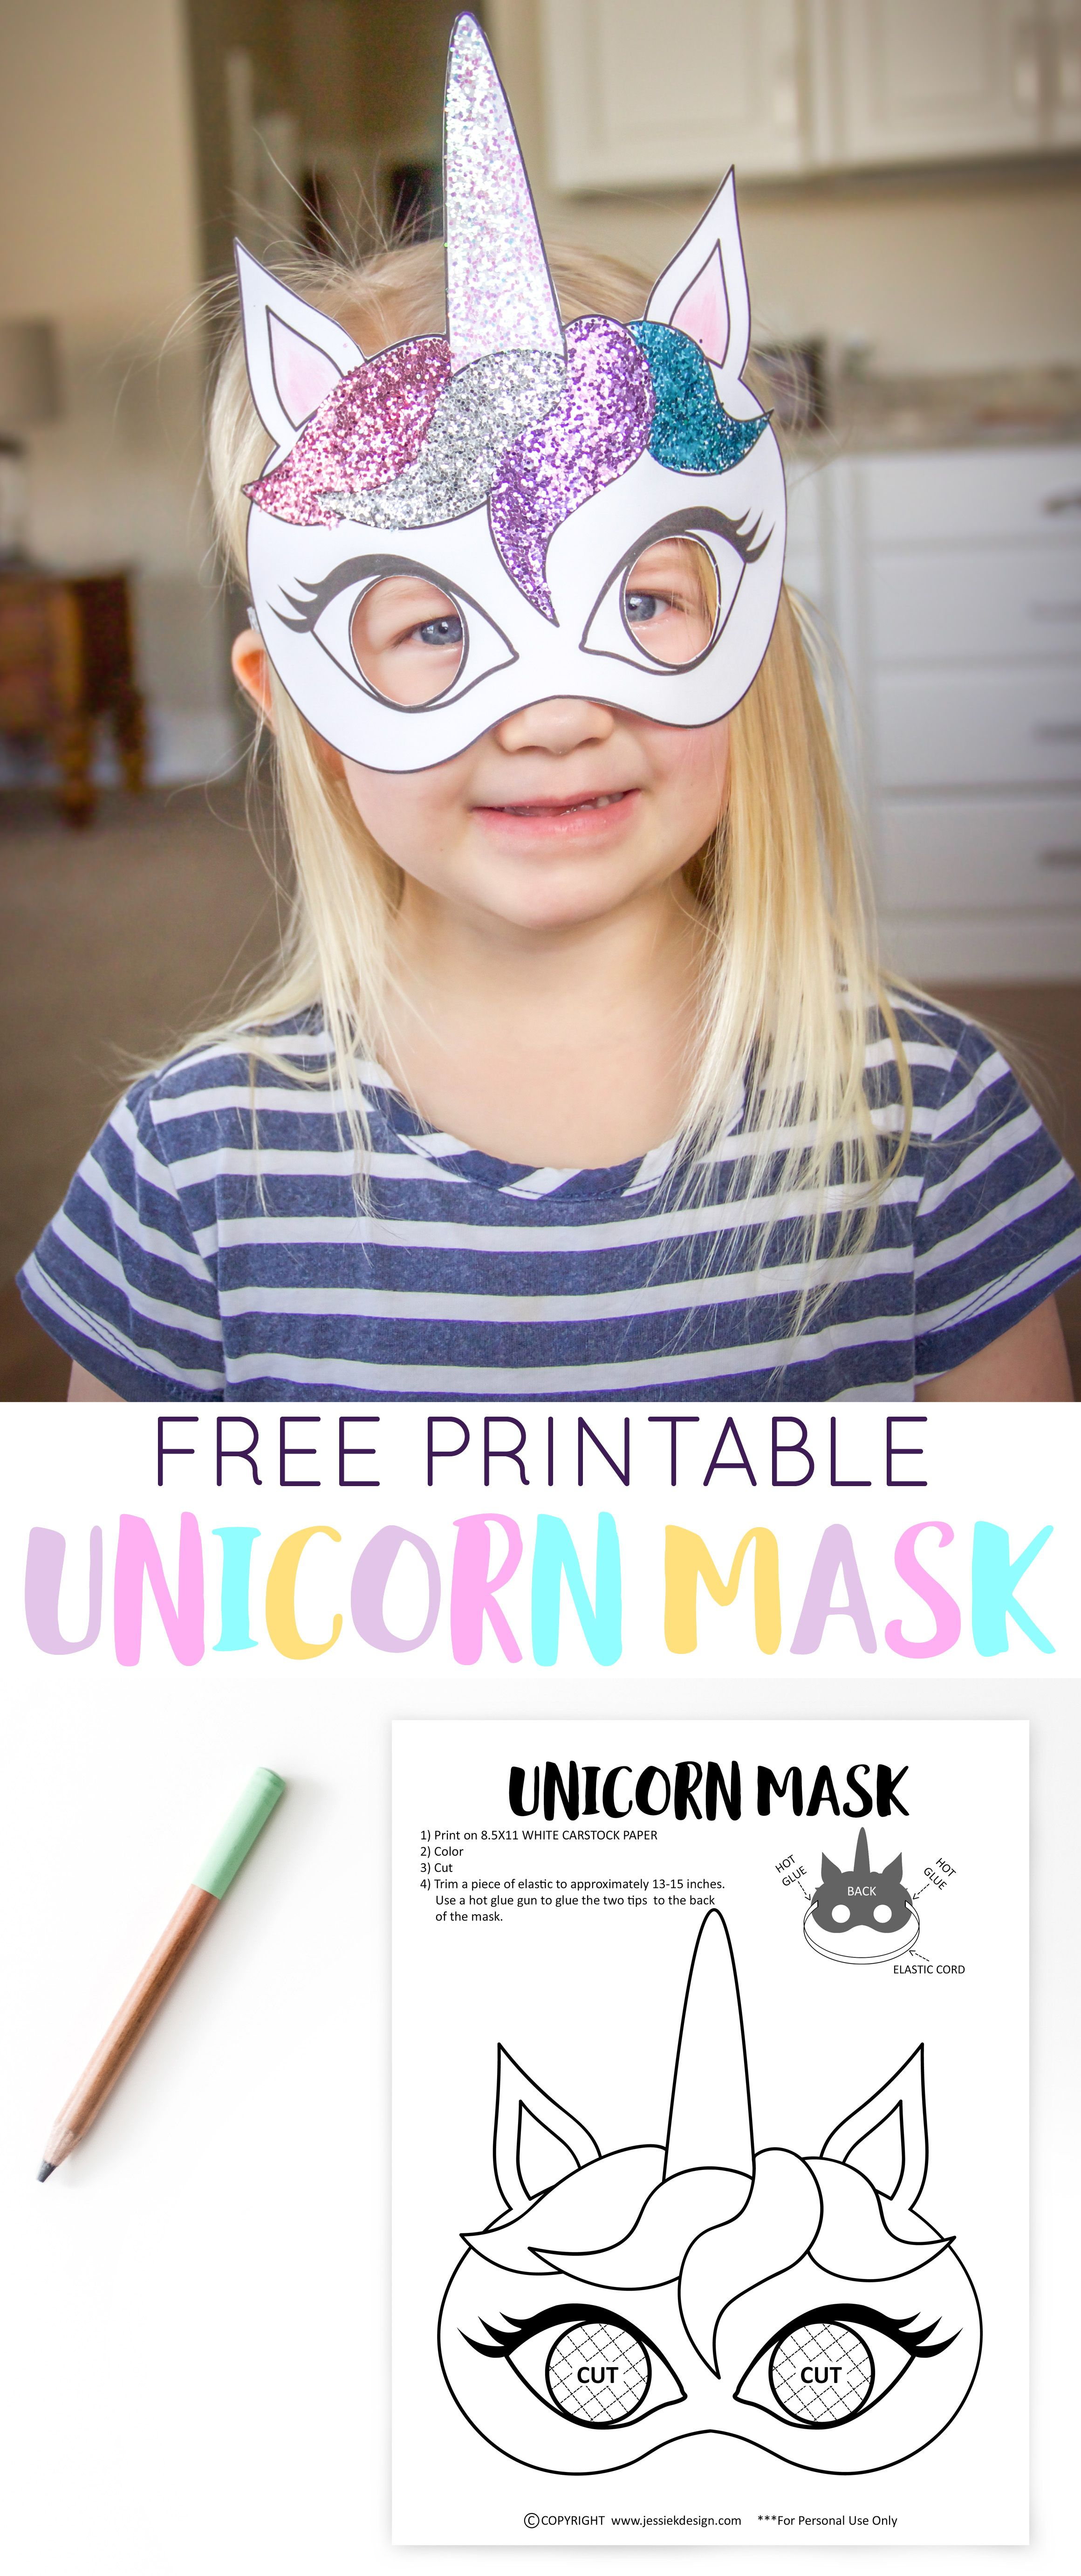 Unicorn Birthday Party Free Printables - Unicorn birthday party decorations, Unicorn themed birthday party, Unicorn birthday parties, Birthday party activities, Rainbow birthday party, Unicorn themed birthday - Your party will be nothing but magical with these FREE PRINTABLE downloads  Included are decorations, games, activities and an invitation  Download today!